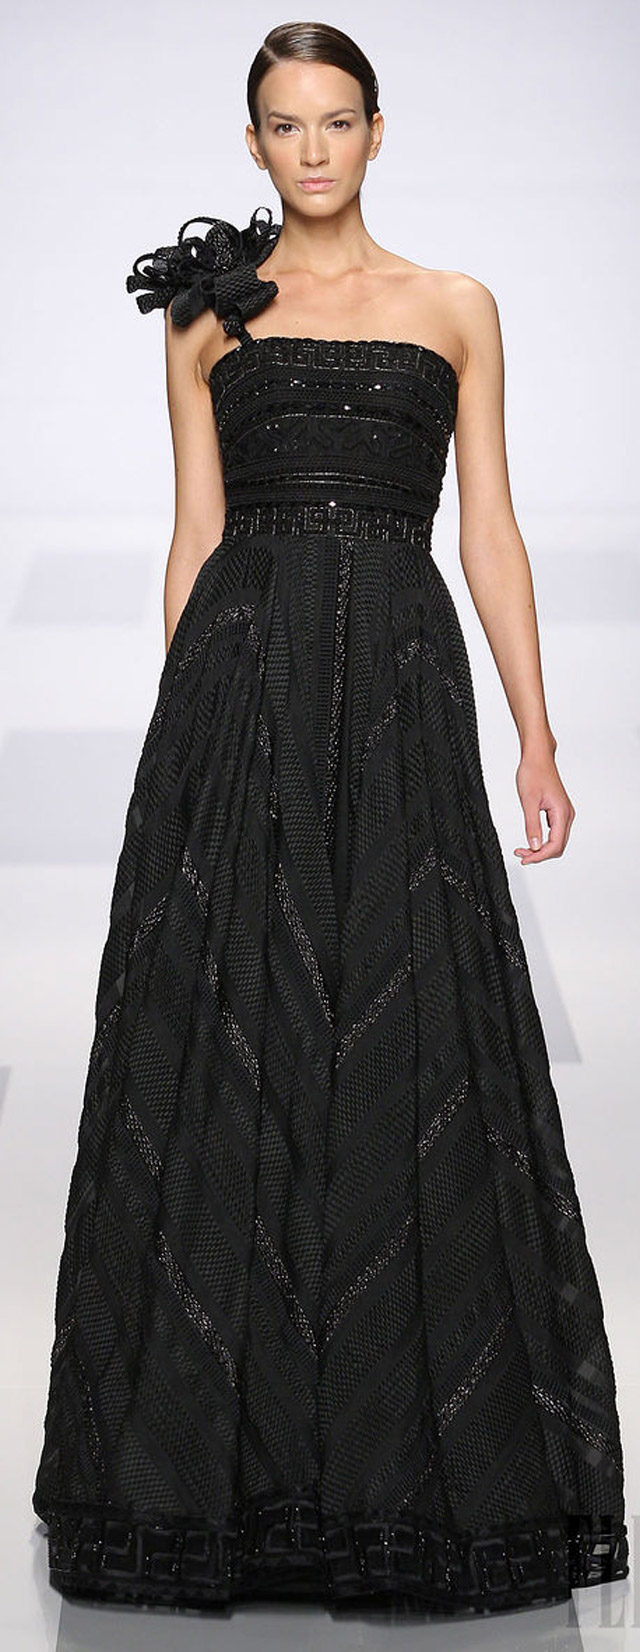 TONY WARD  COUTURE  FALL-WINTER 2013-2014 (19)